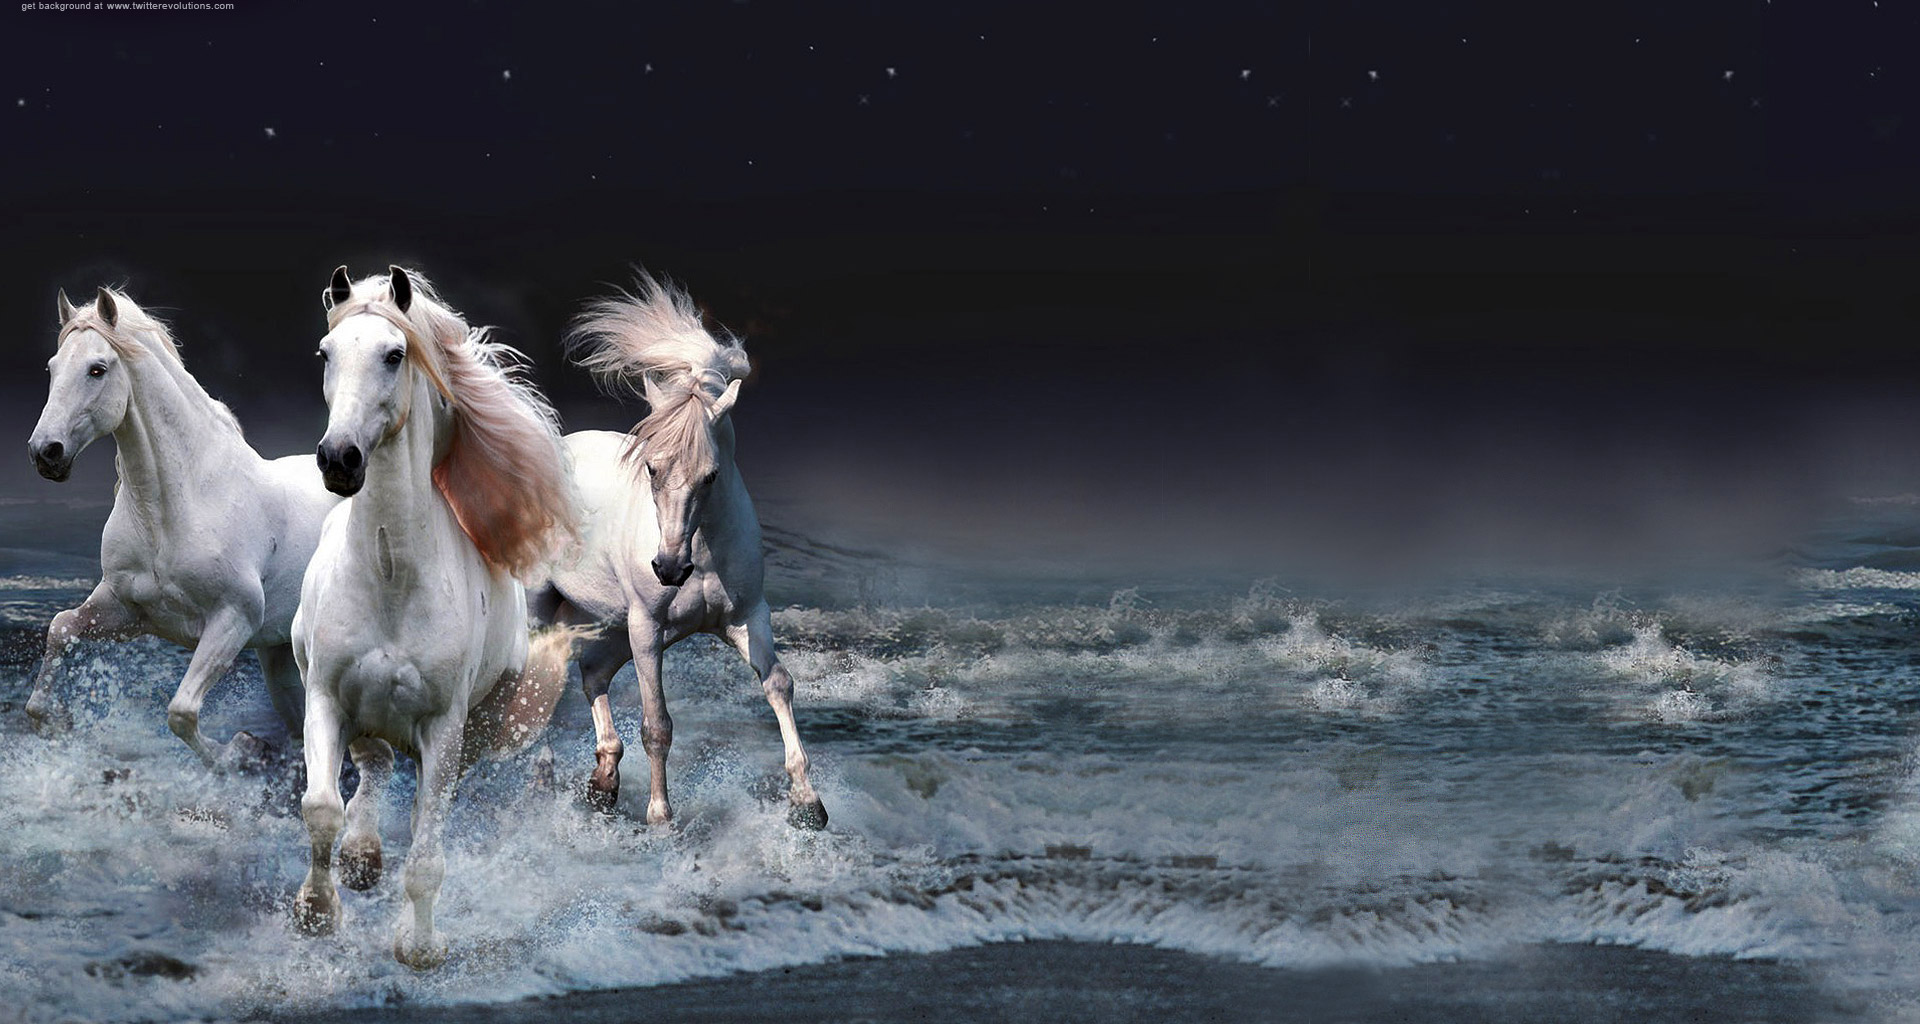 10+ images about HORSES on Pinterest | White horses, Friesian and